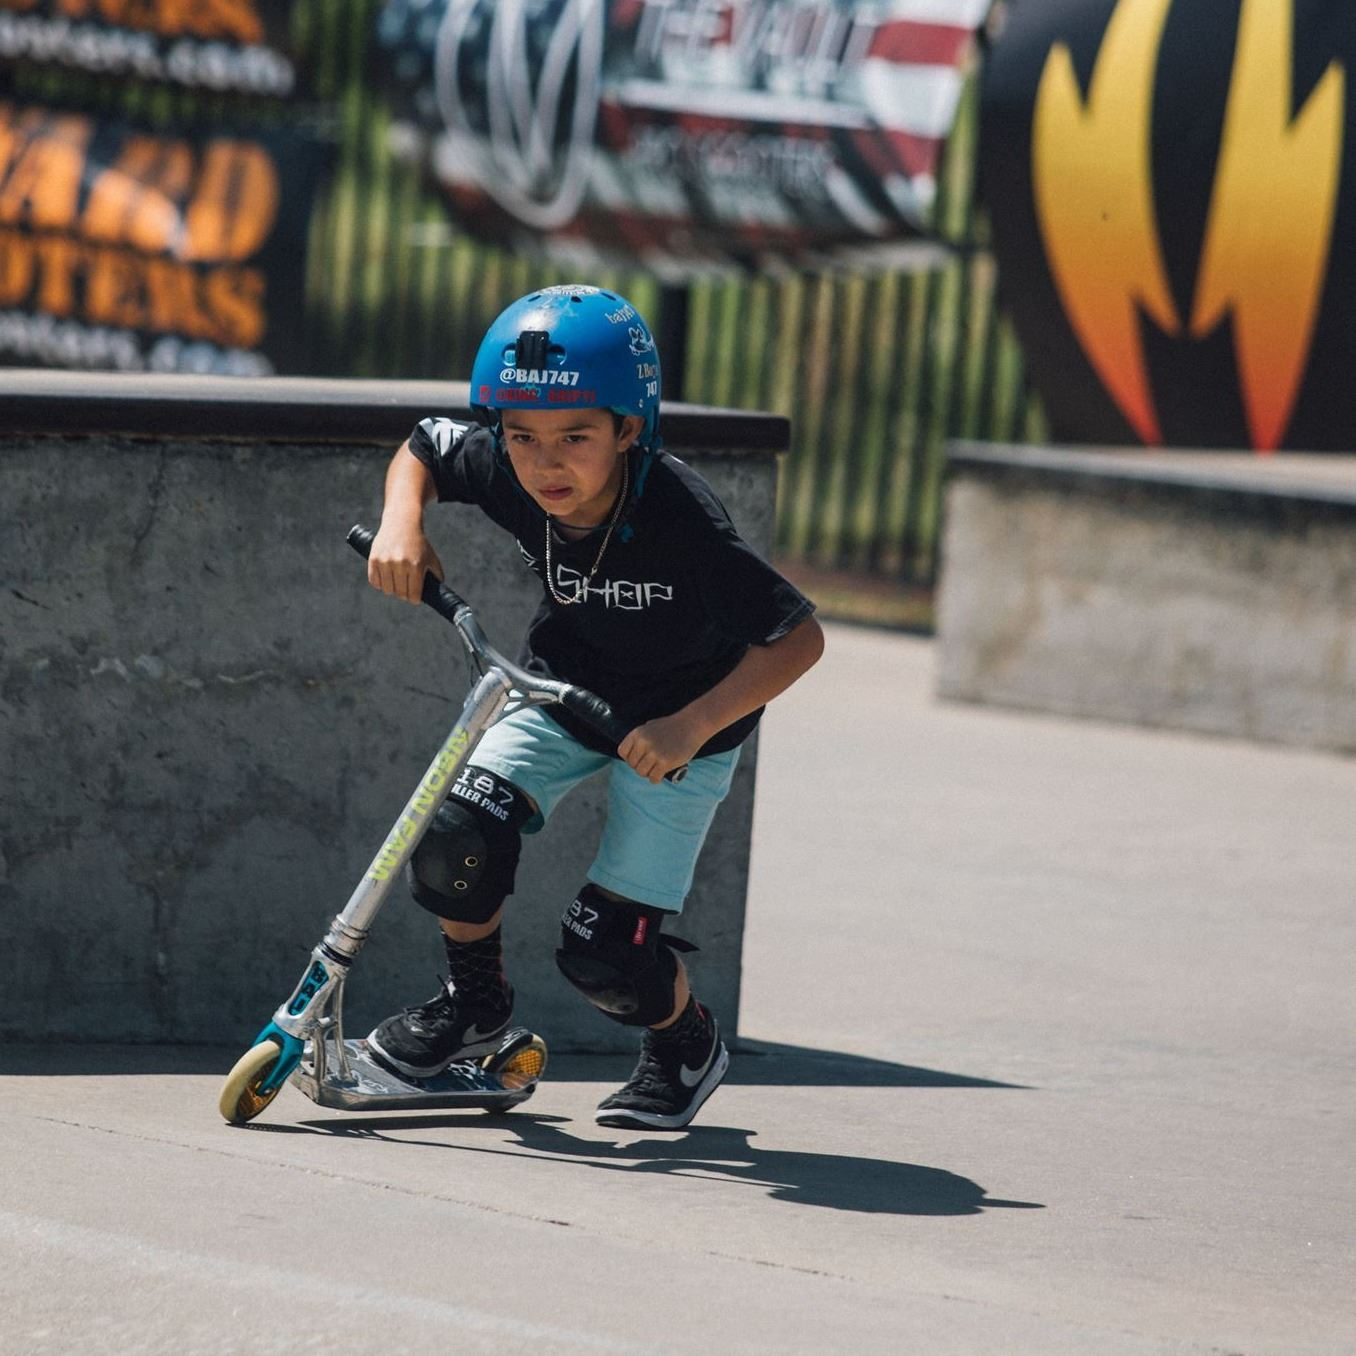 Child on scooter at skate park